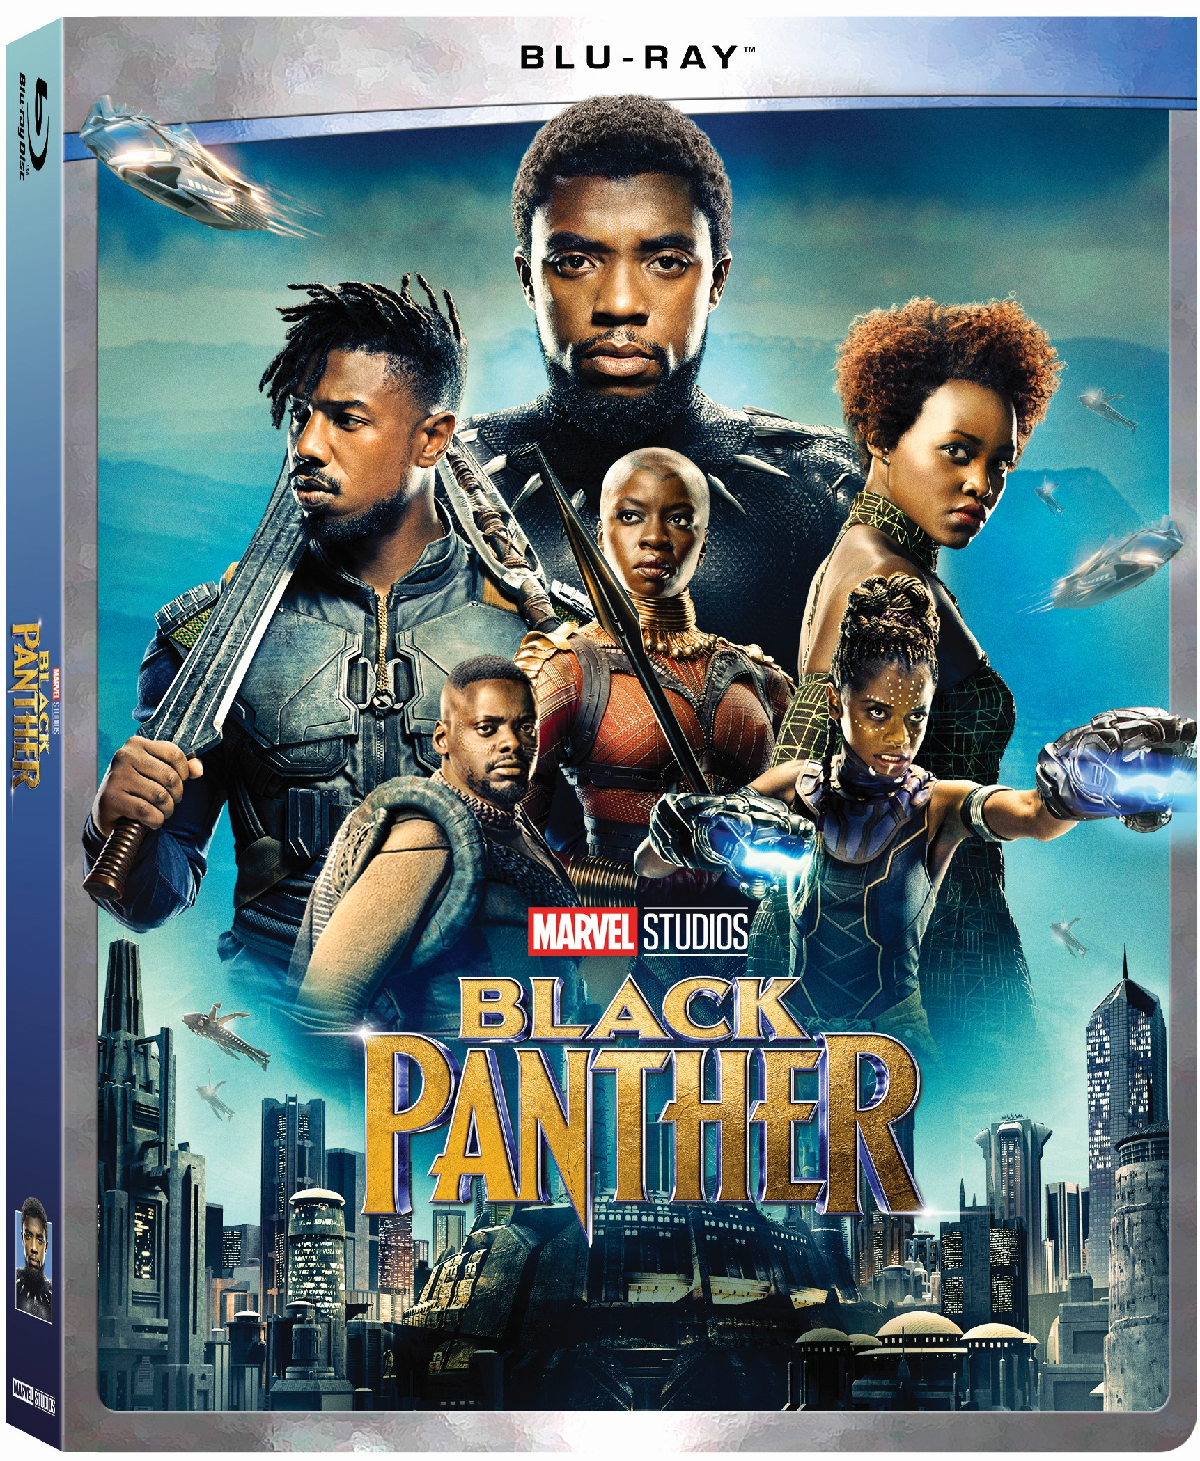 MARVEL'S BLACK PANTHER (Blu-ray) 2018 w/ SLIP COVER **FREE SHIPPING**